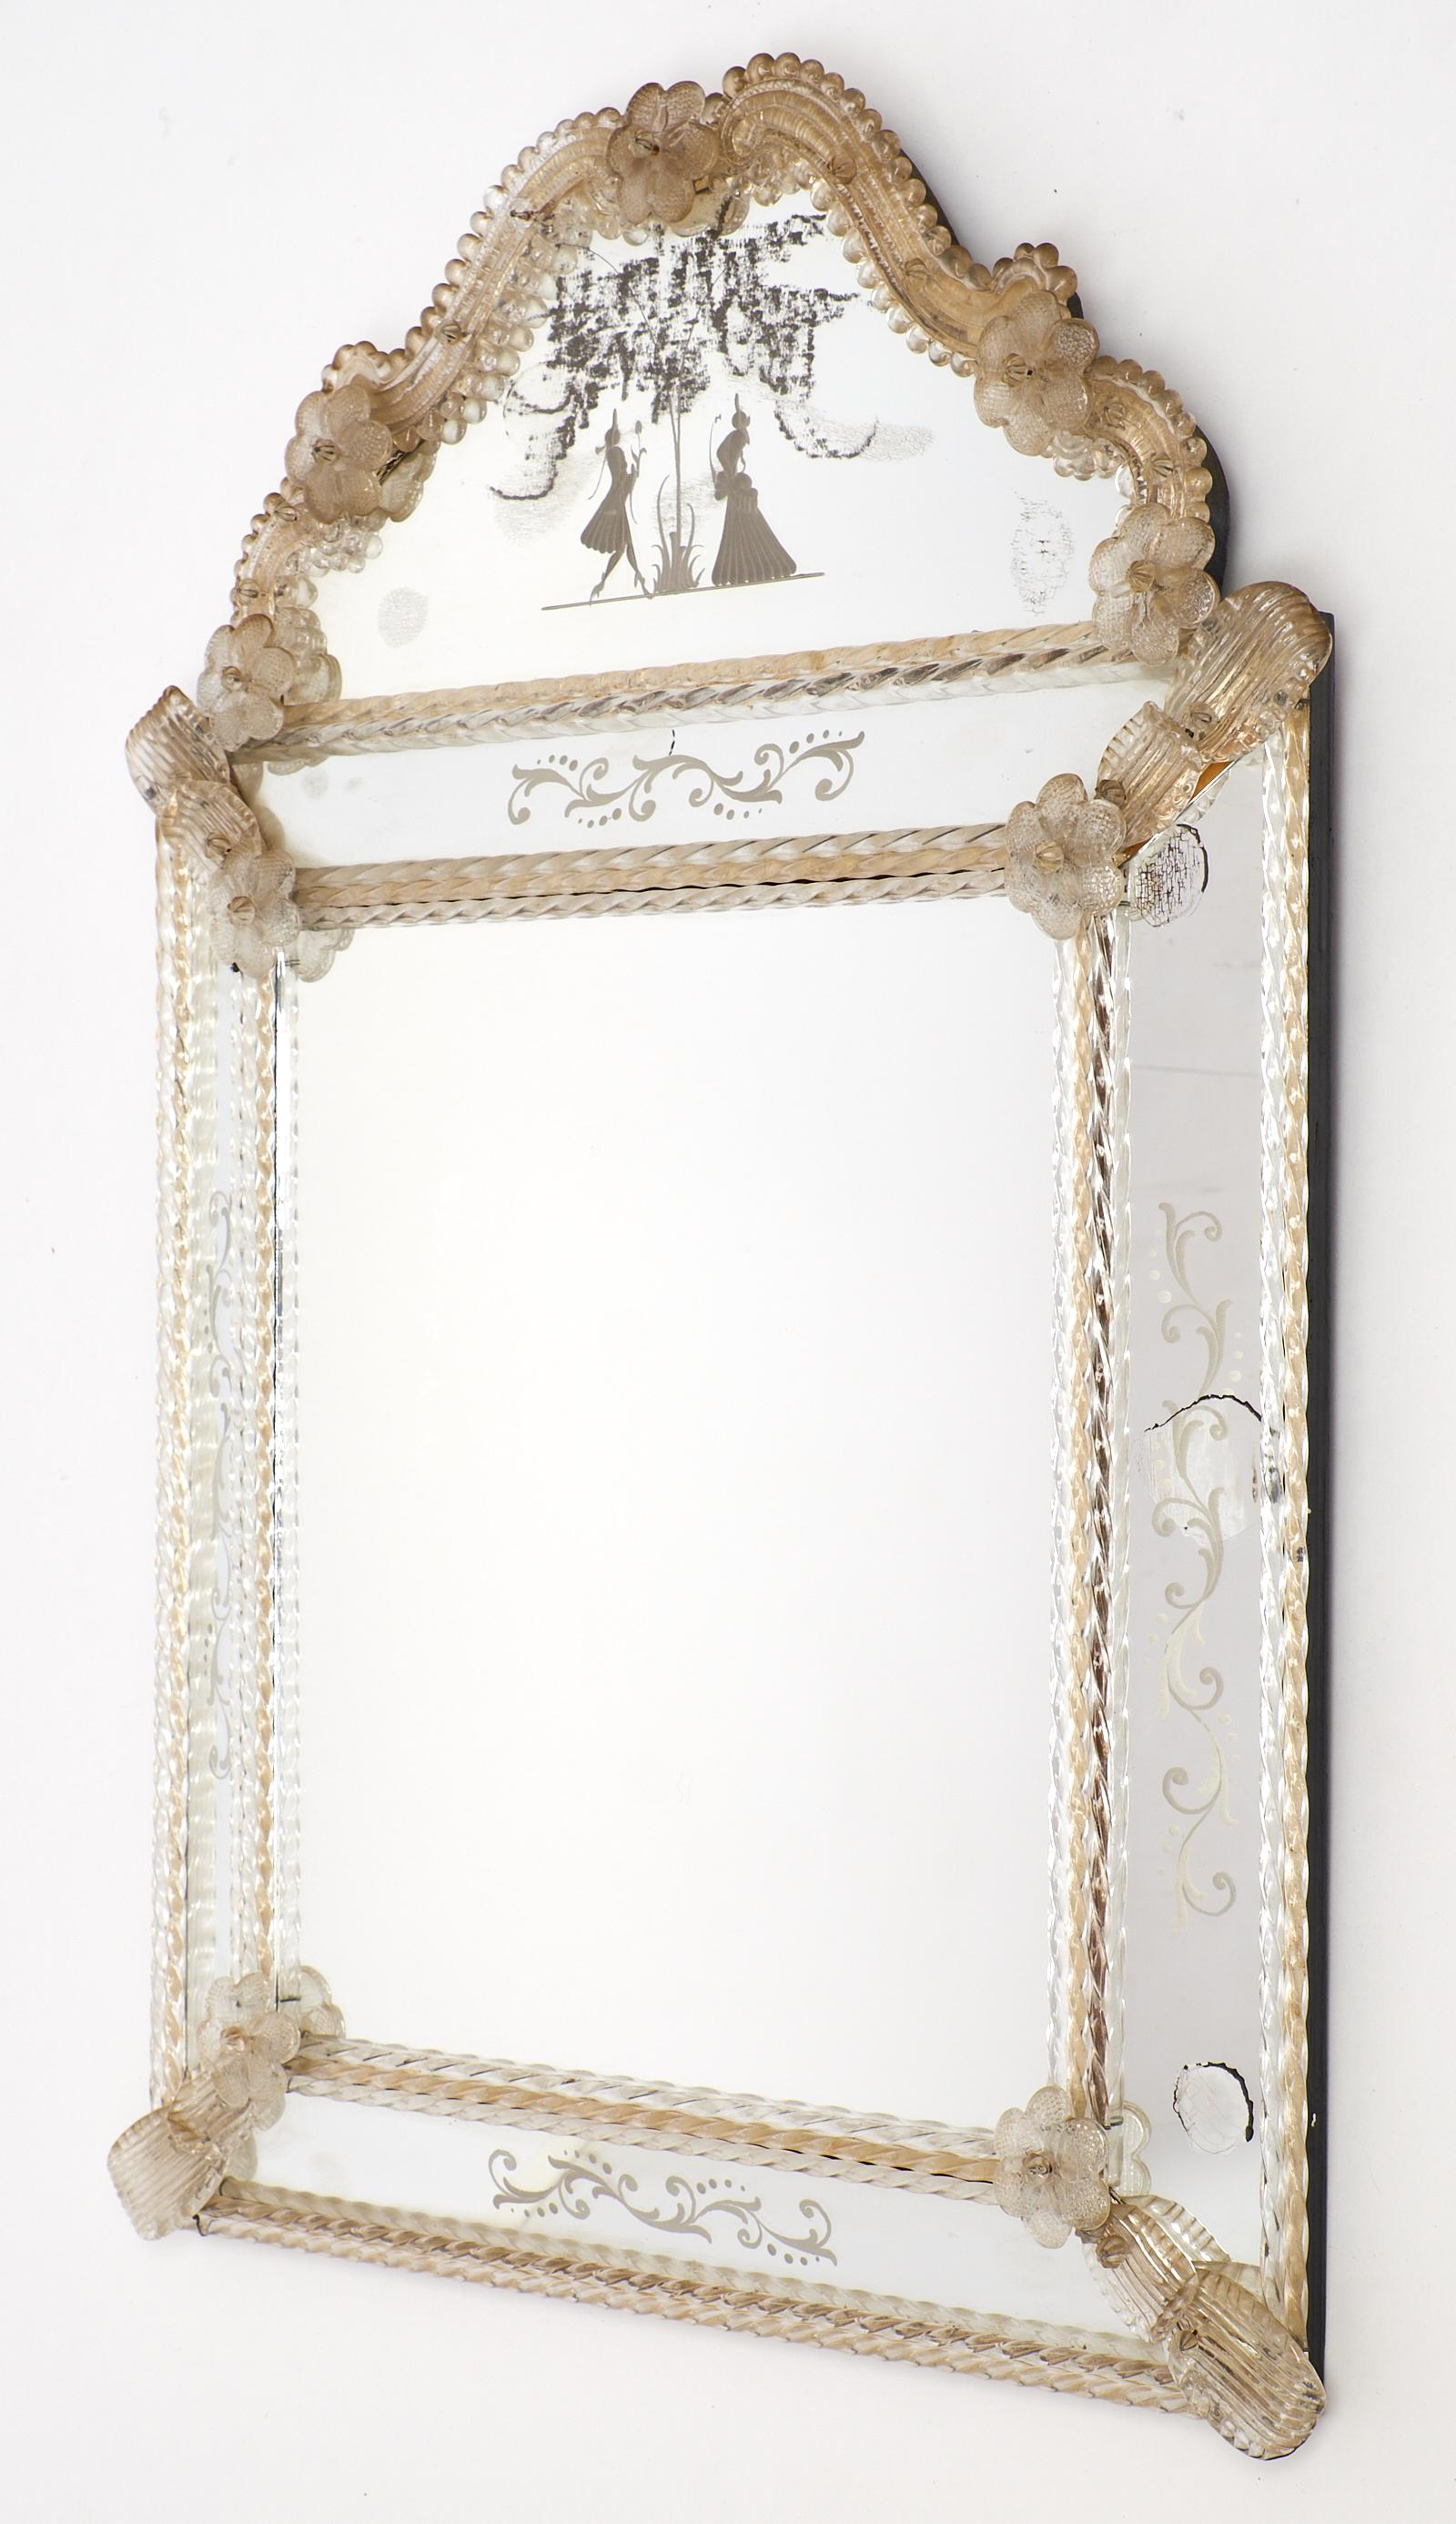 Venetian Mirrors For Sale Nz | Vanity And Nightstand Decoration Inside Venetian Mirrors For Sale (View 6 of 20)